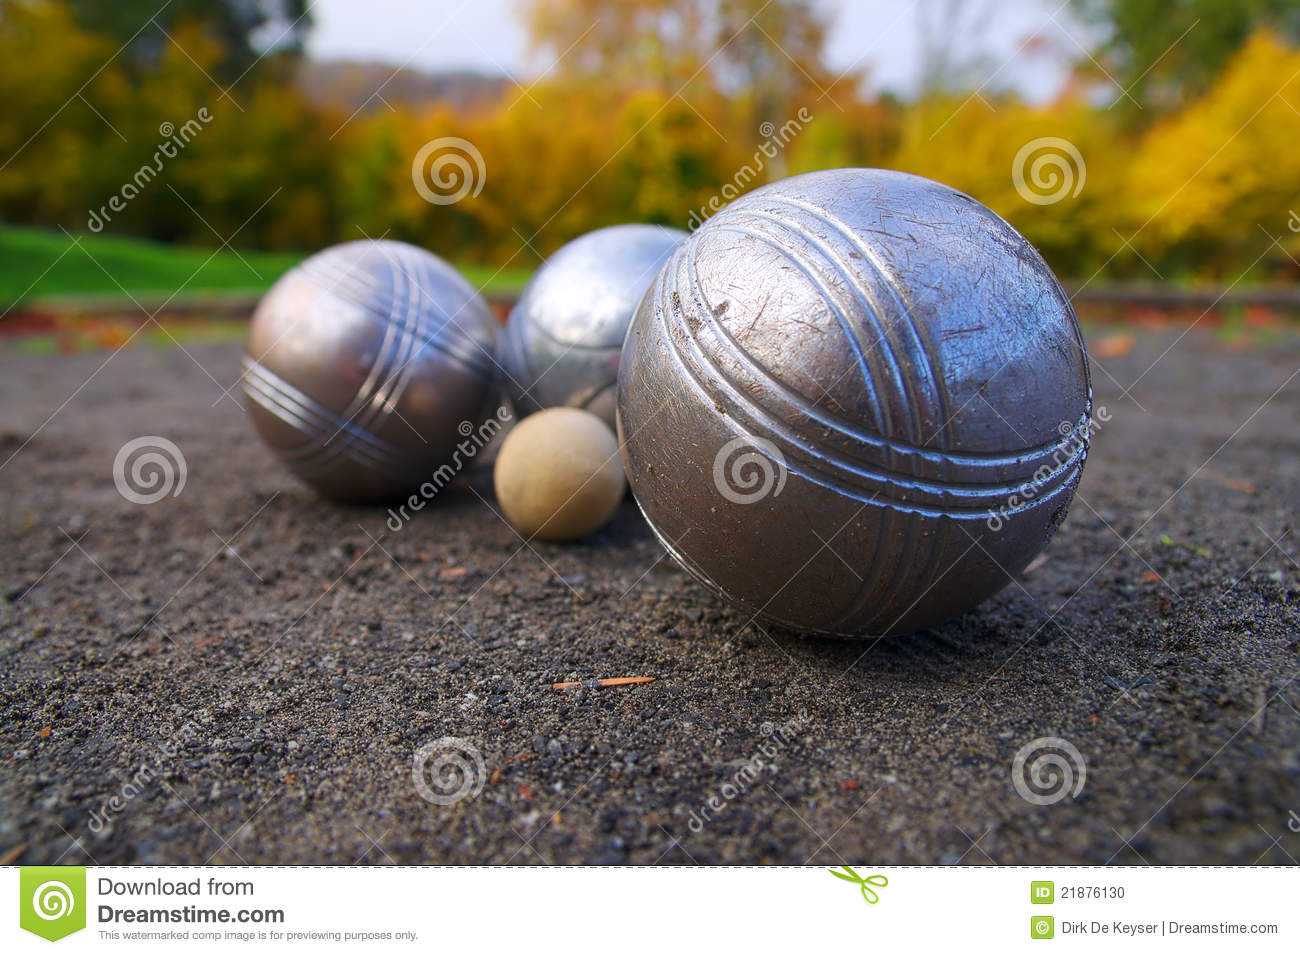 Petanque jeu de boules france sports game stock photo for Boule deboule le jeu